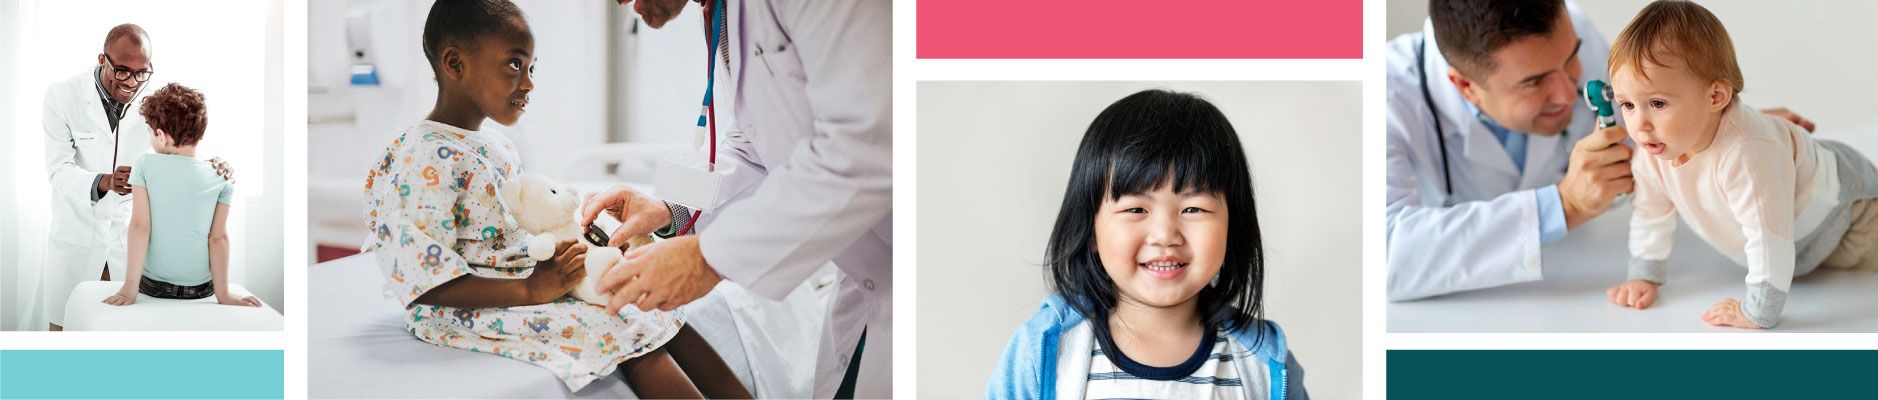 Photo collage of pediatric doctors and kids